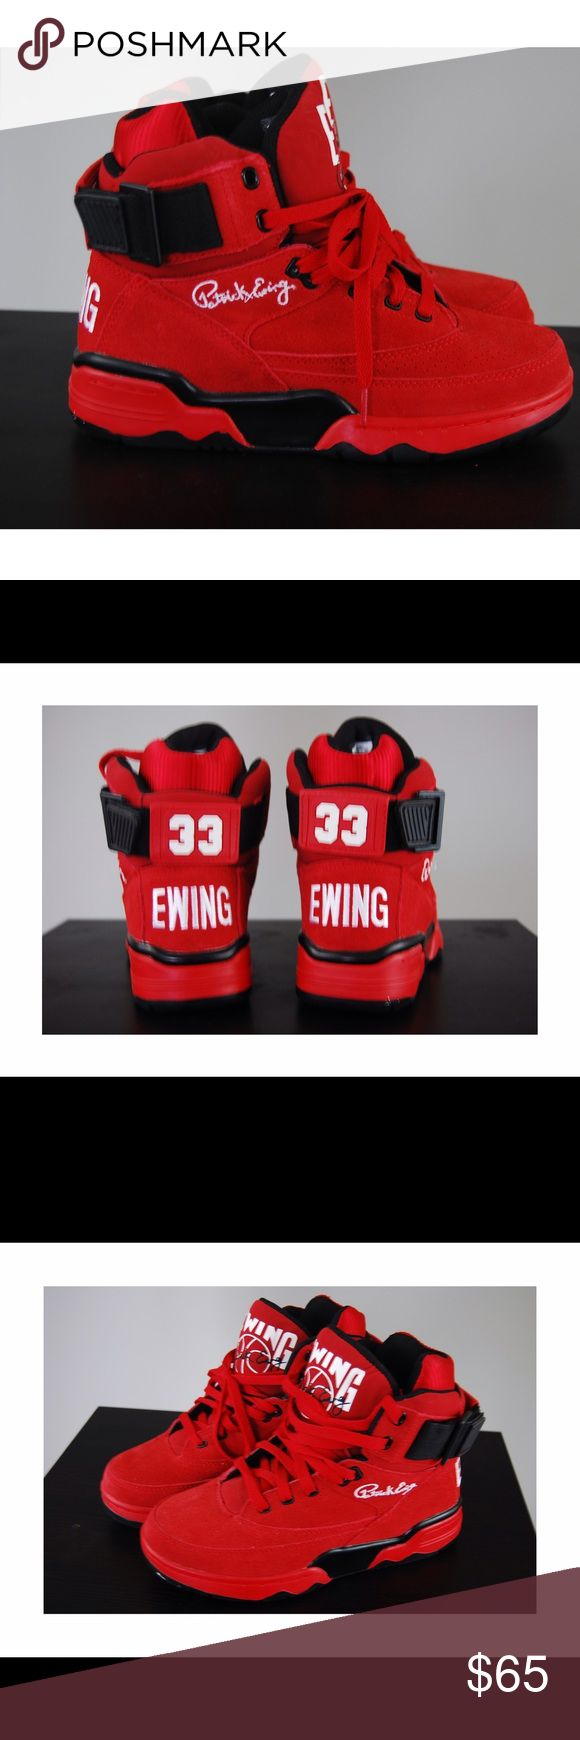 Patrick Ewing 33 HI Brand New!                                                          6Y Patrick Ewing Shoes Sneakers